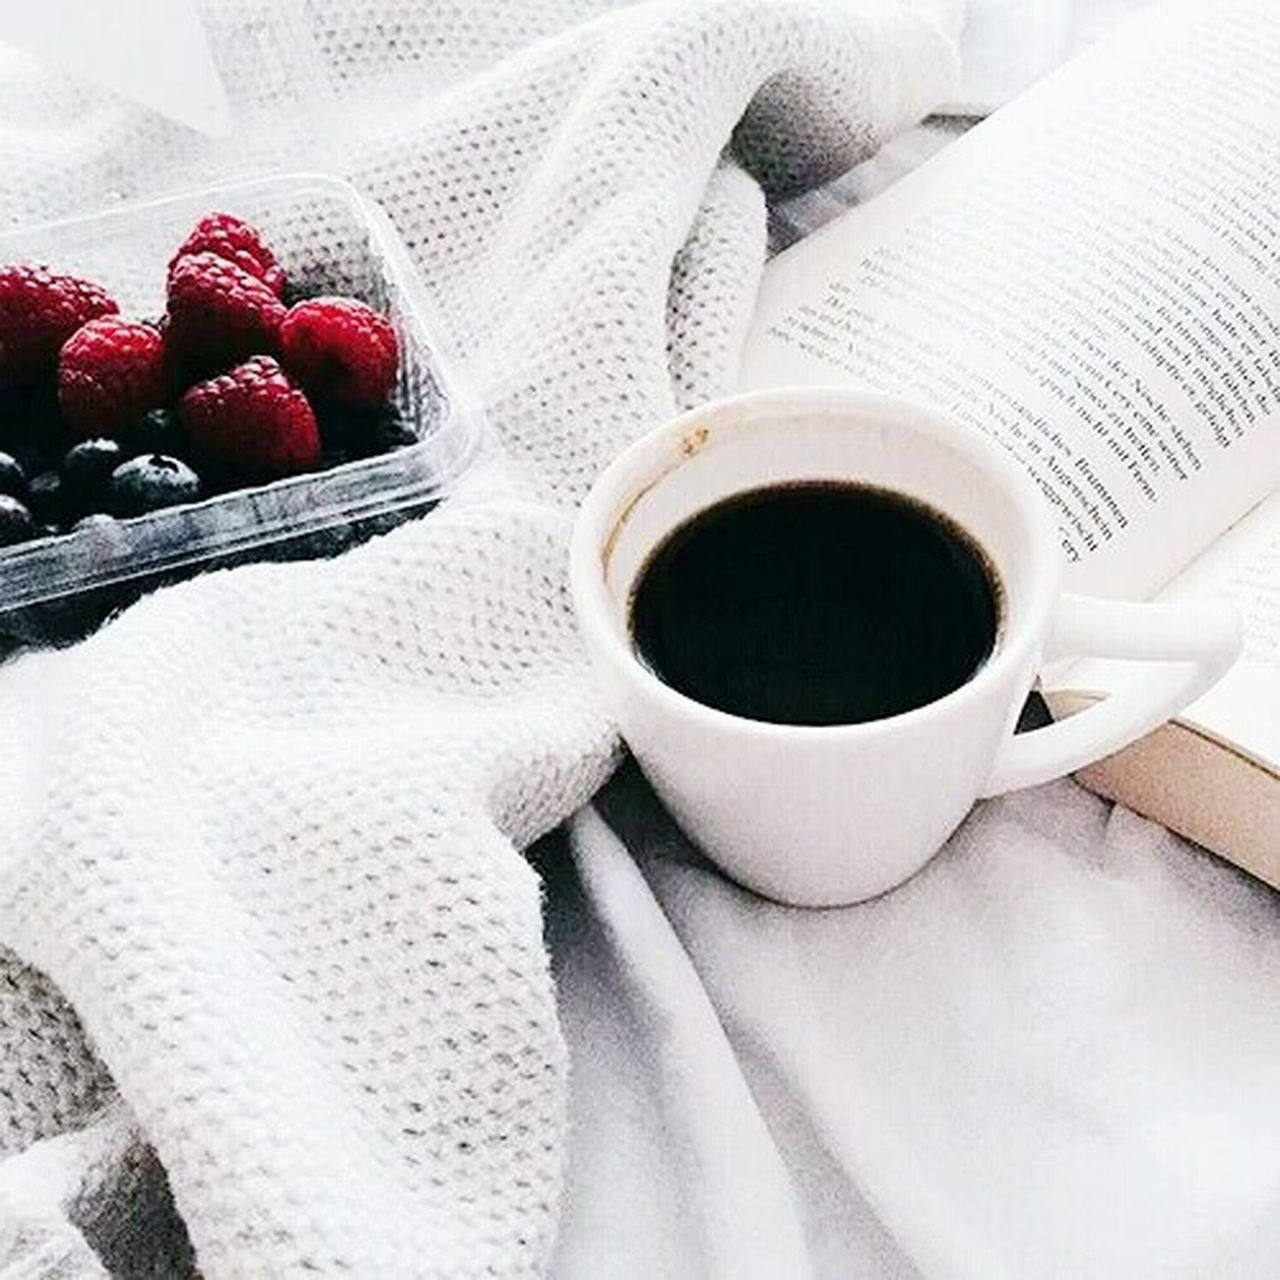 coffee cup, coffee - drink, food and drink, drink, refreshment, table, freshness, no people, fruit, indoors, red, close-up, day, food